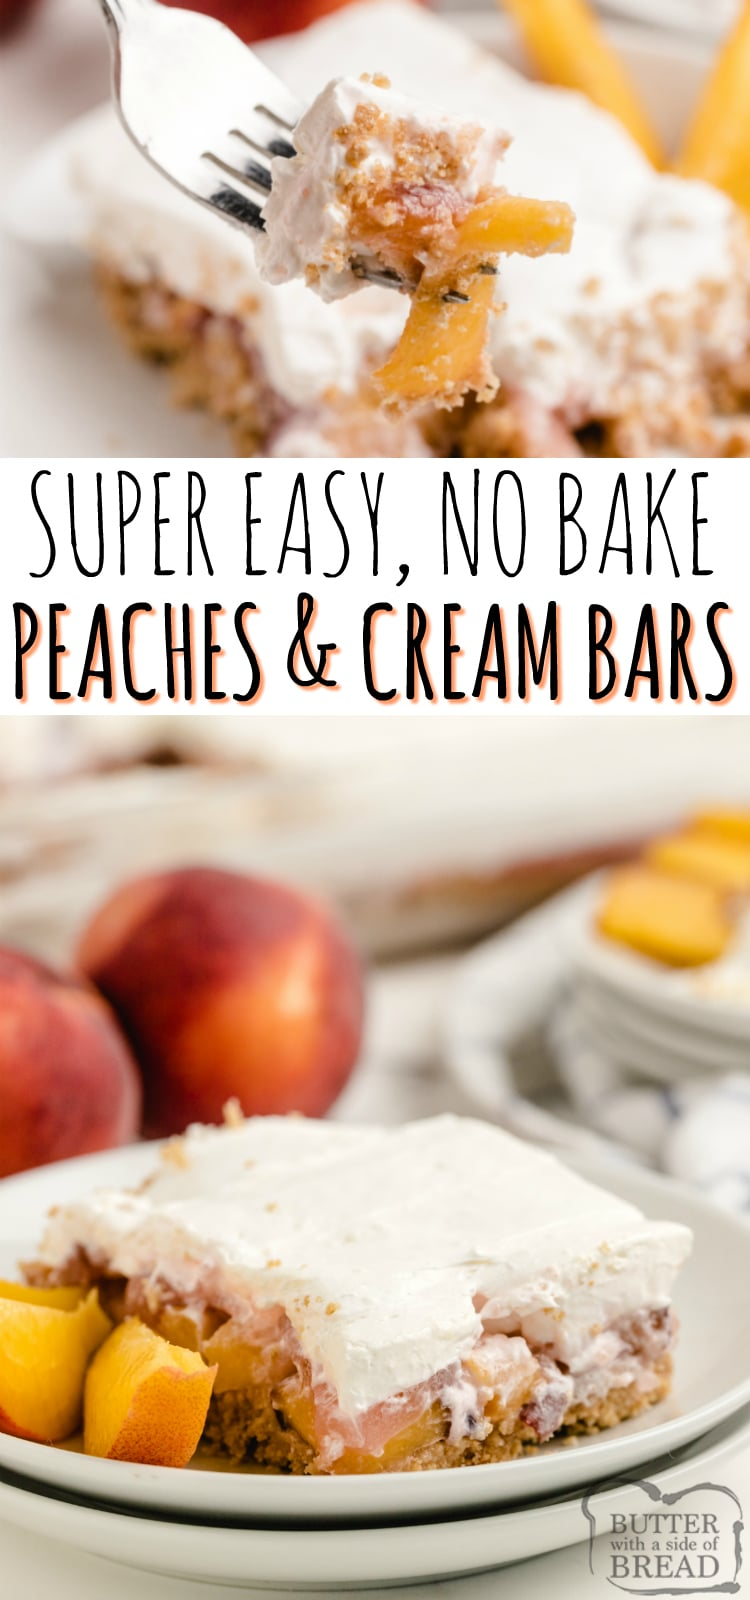 No-Bake Peaches & Cream Bars are one of my favorite fresh peach dessert recipes! Made with peach jello, cream cheese, graham crackers and of course, fresh & juicy peaches!